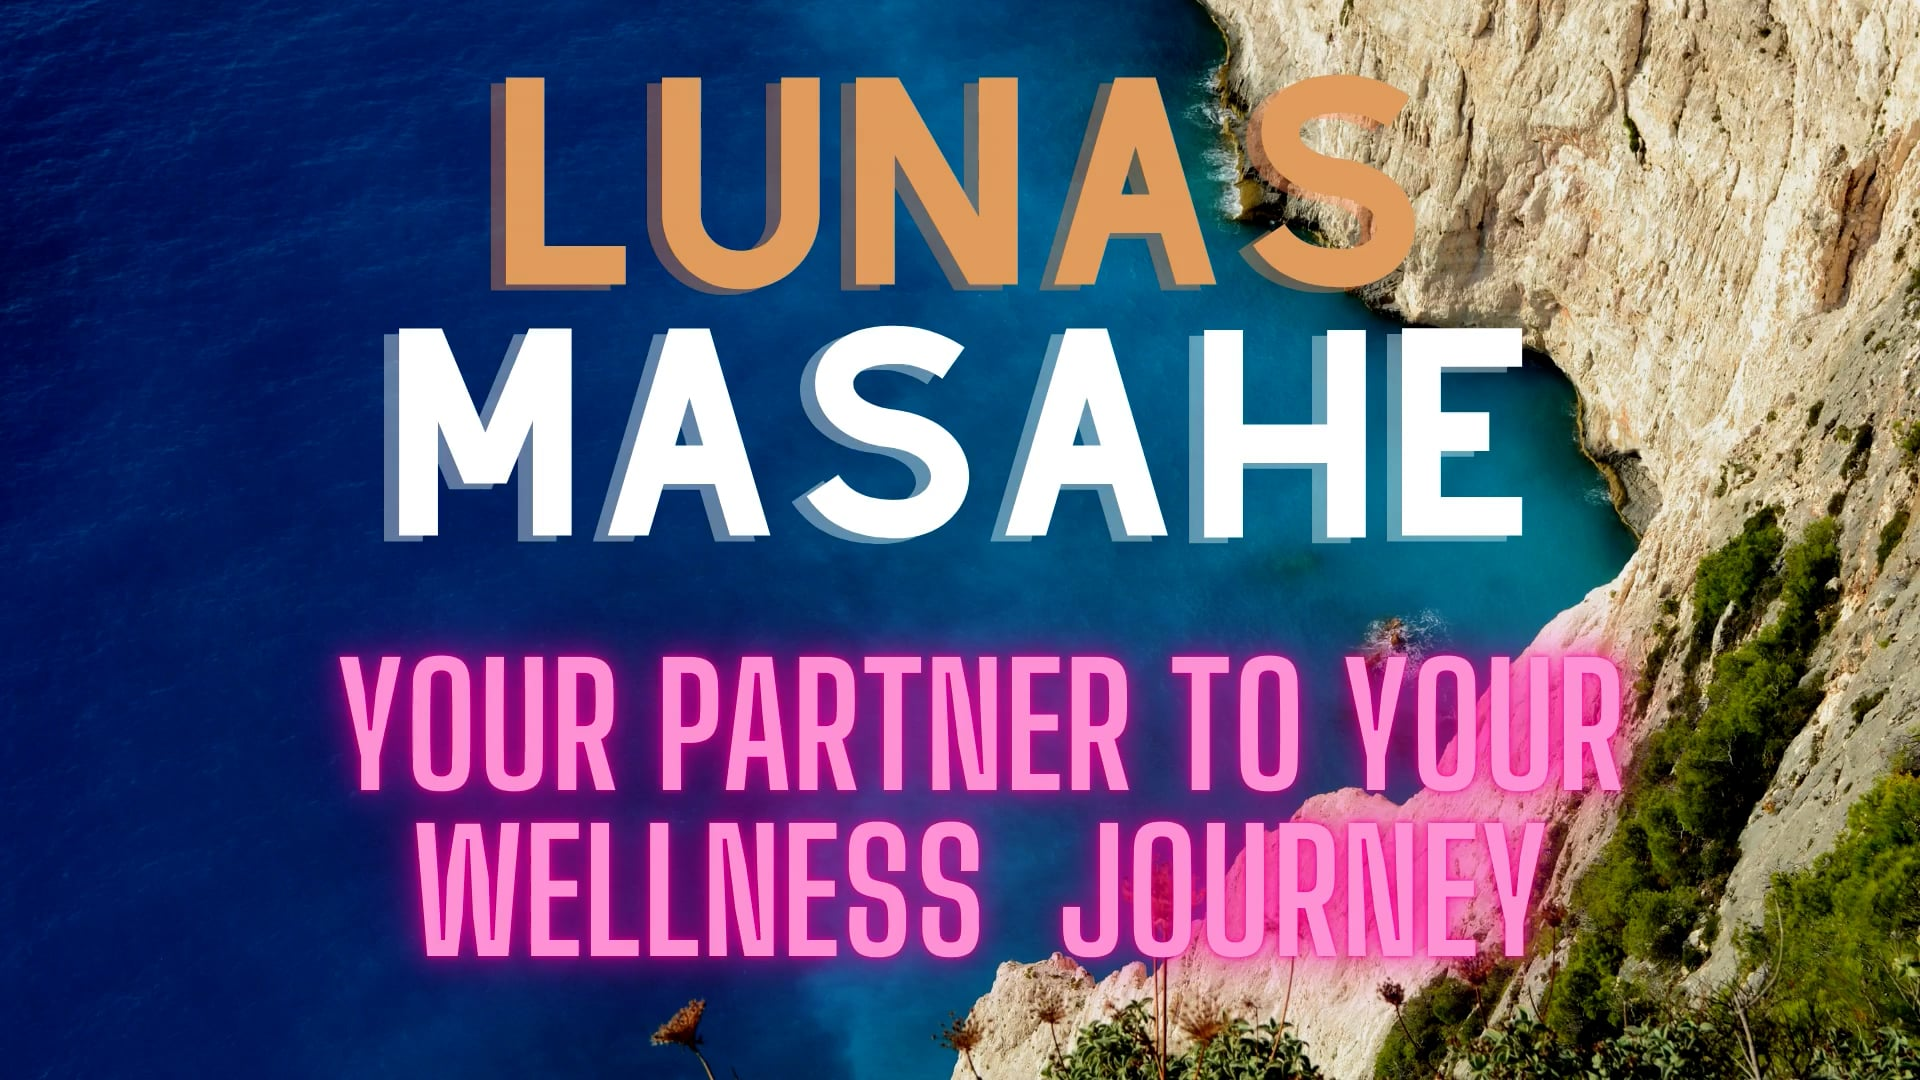 Relax and manage your pain at Lunas Masahe